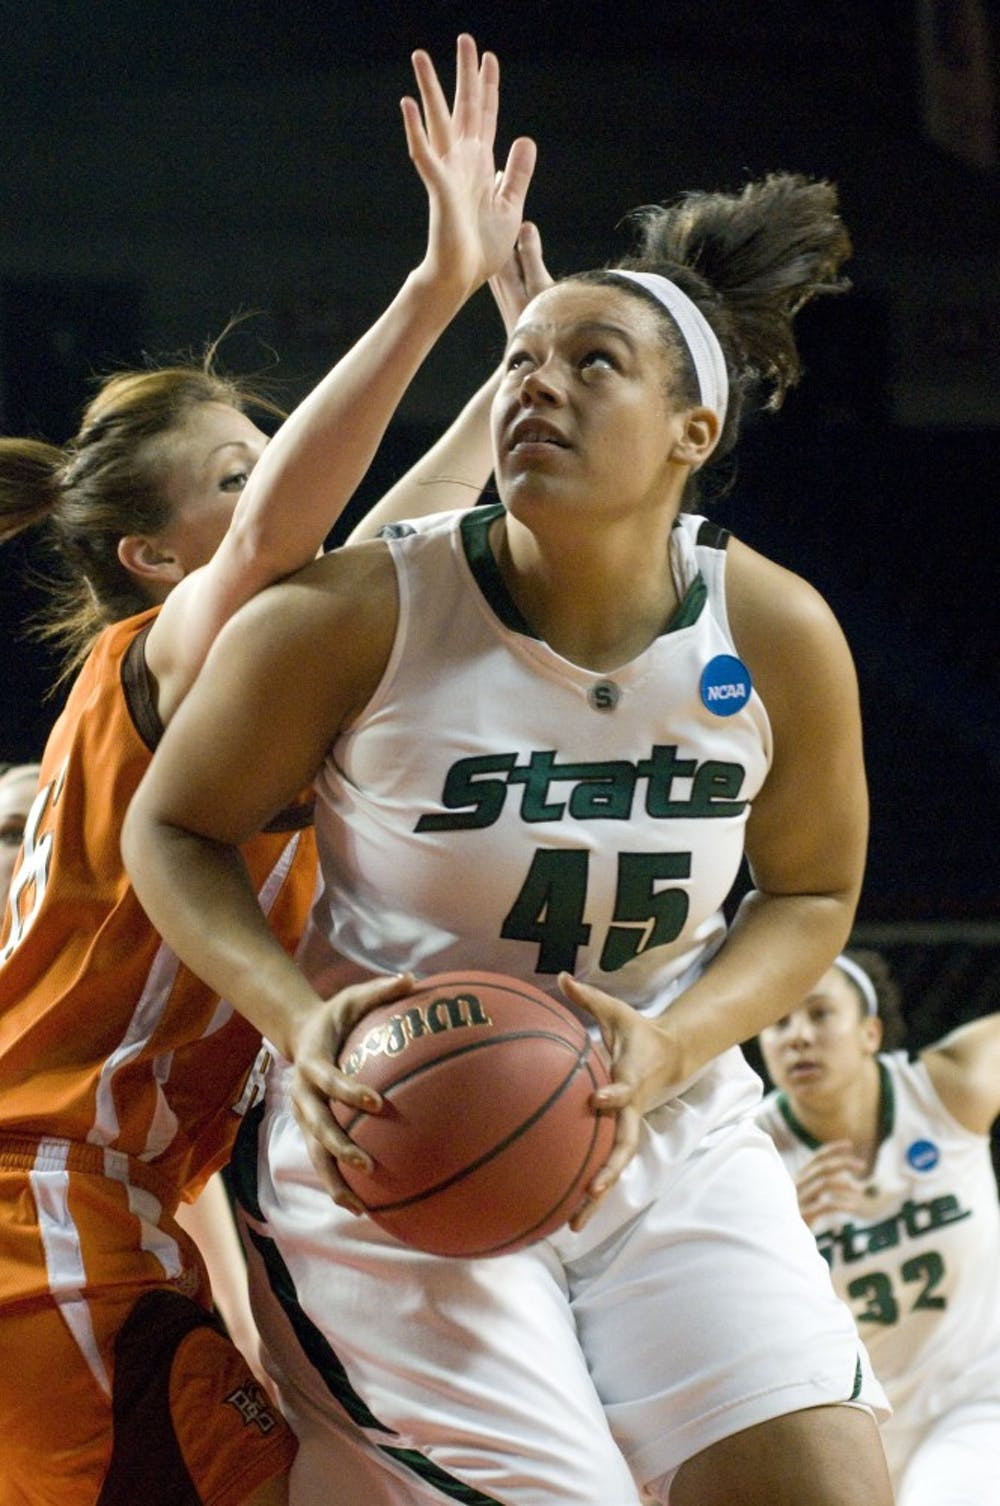 Senior center Lauren Aitch looks up toward the basket over Bowling Green center Chelsea Albert before shooting Saturday in MSU's first-round NCAA Tournament game in Louisville, Ky. Aitch had 10 points in MSU's 72-62 victory over Bowling Green.